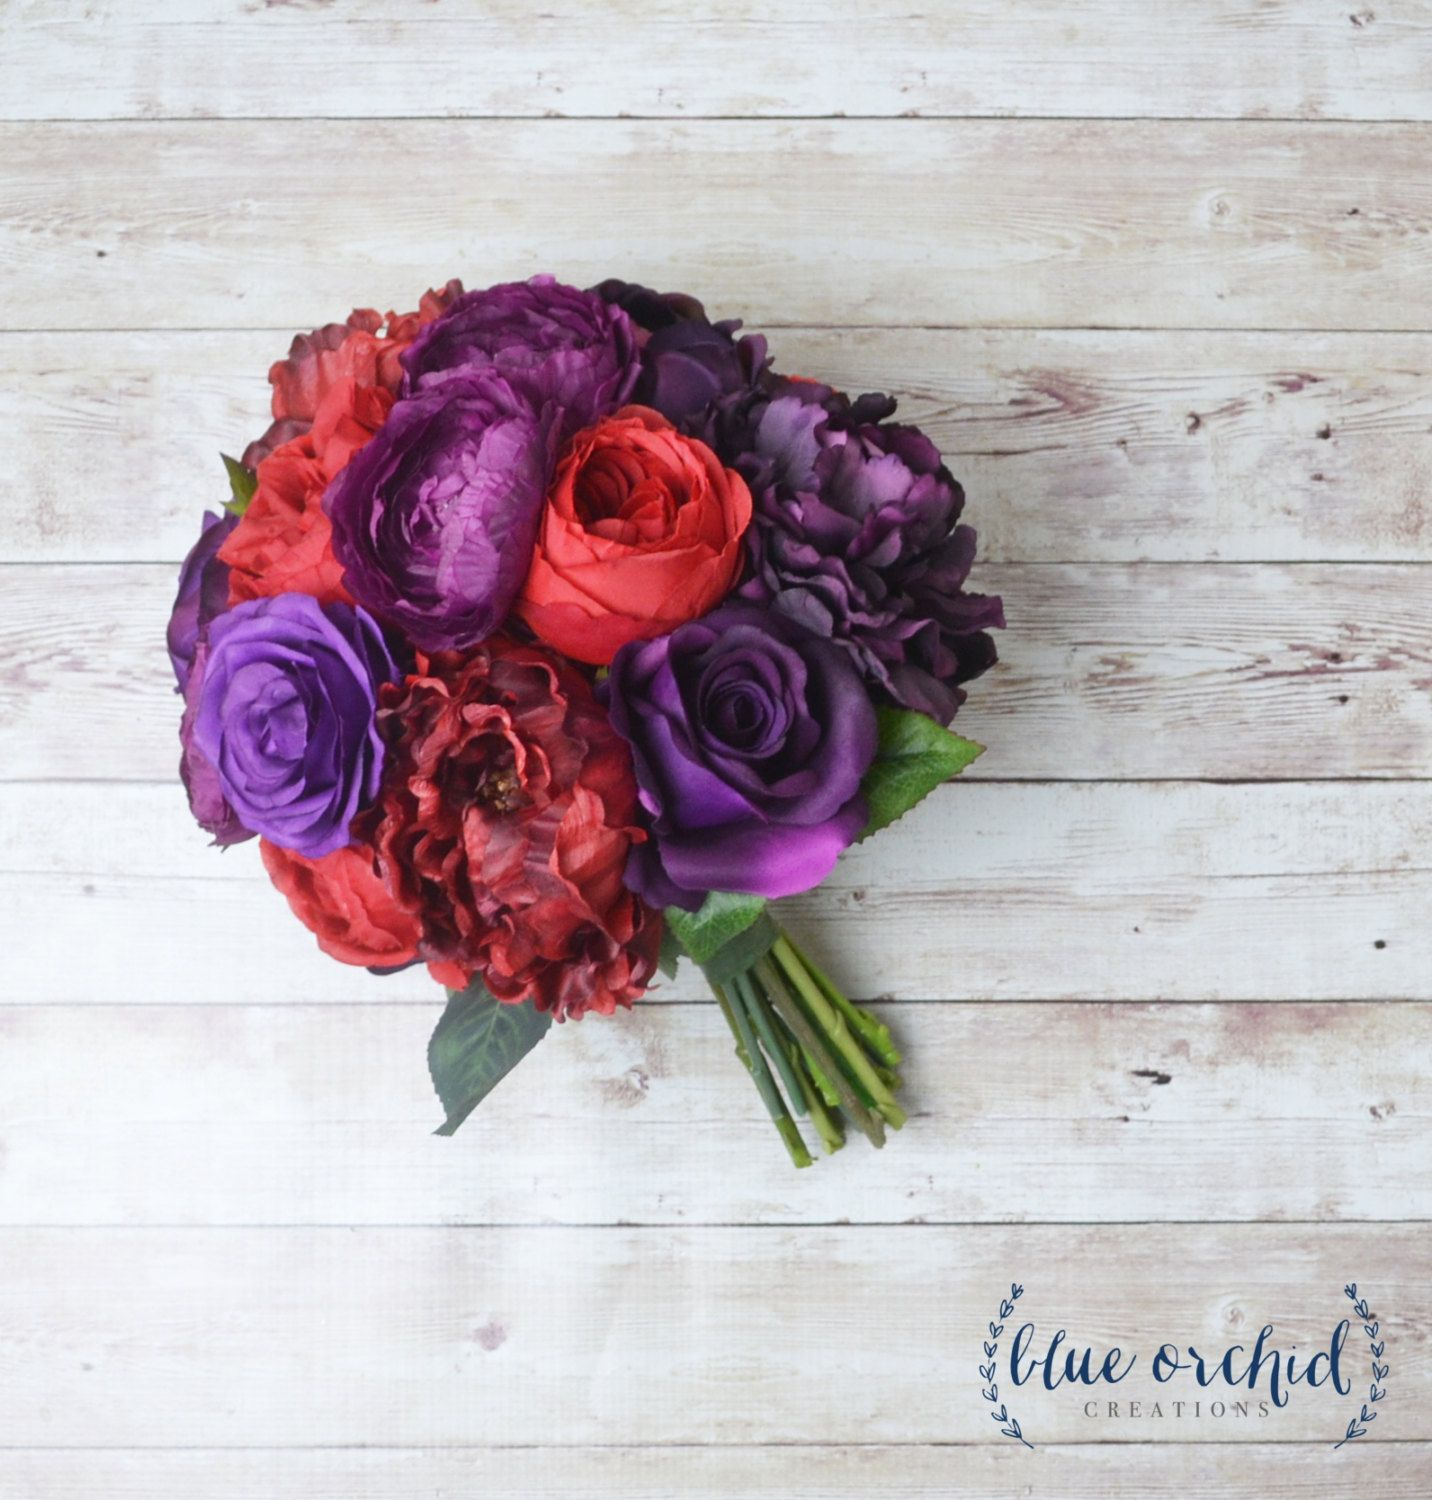 Peony bouquet wedding bouquet silk peonies silk flowers flower peony bouquet wedding bouquet silk peonies silk flowers flower arrangement purple bouquet red bouquet dark bouquet vibrant bouquet dhlflorist Images